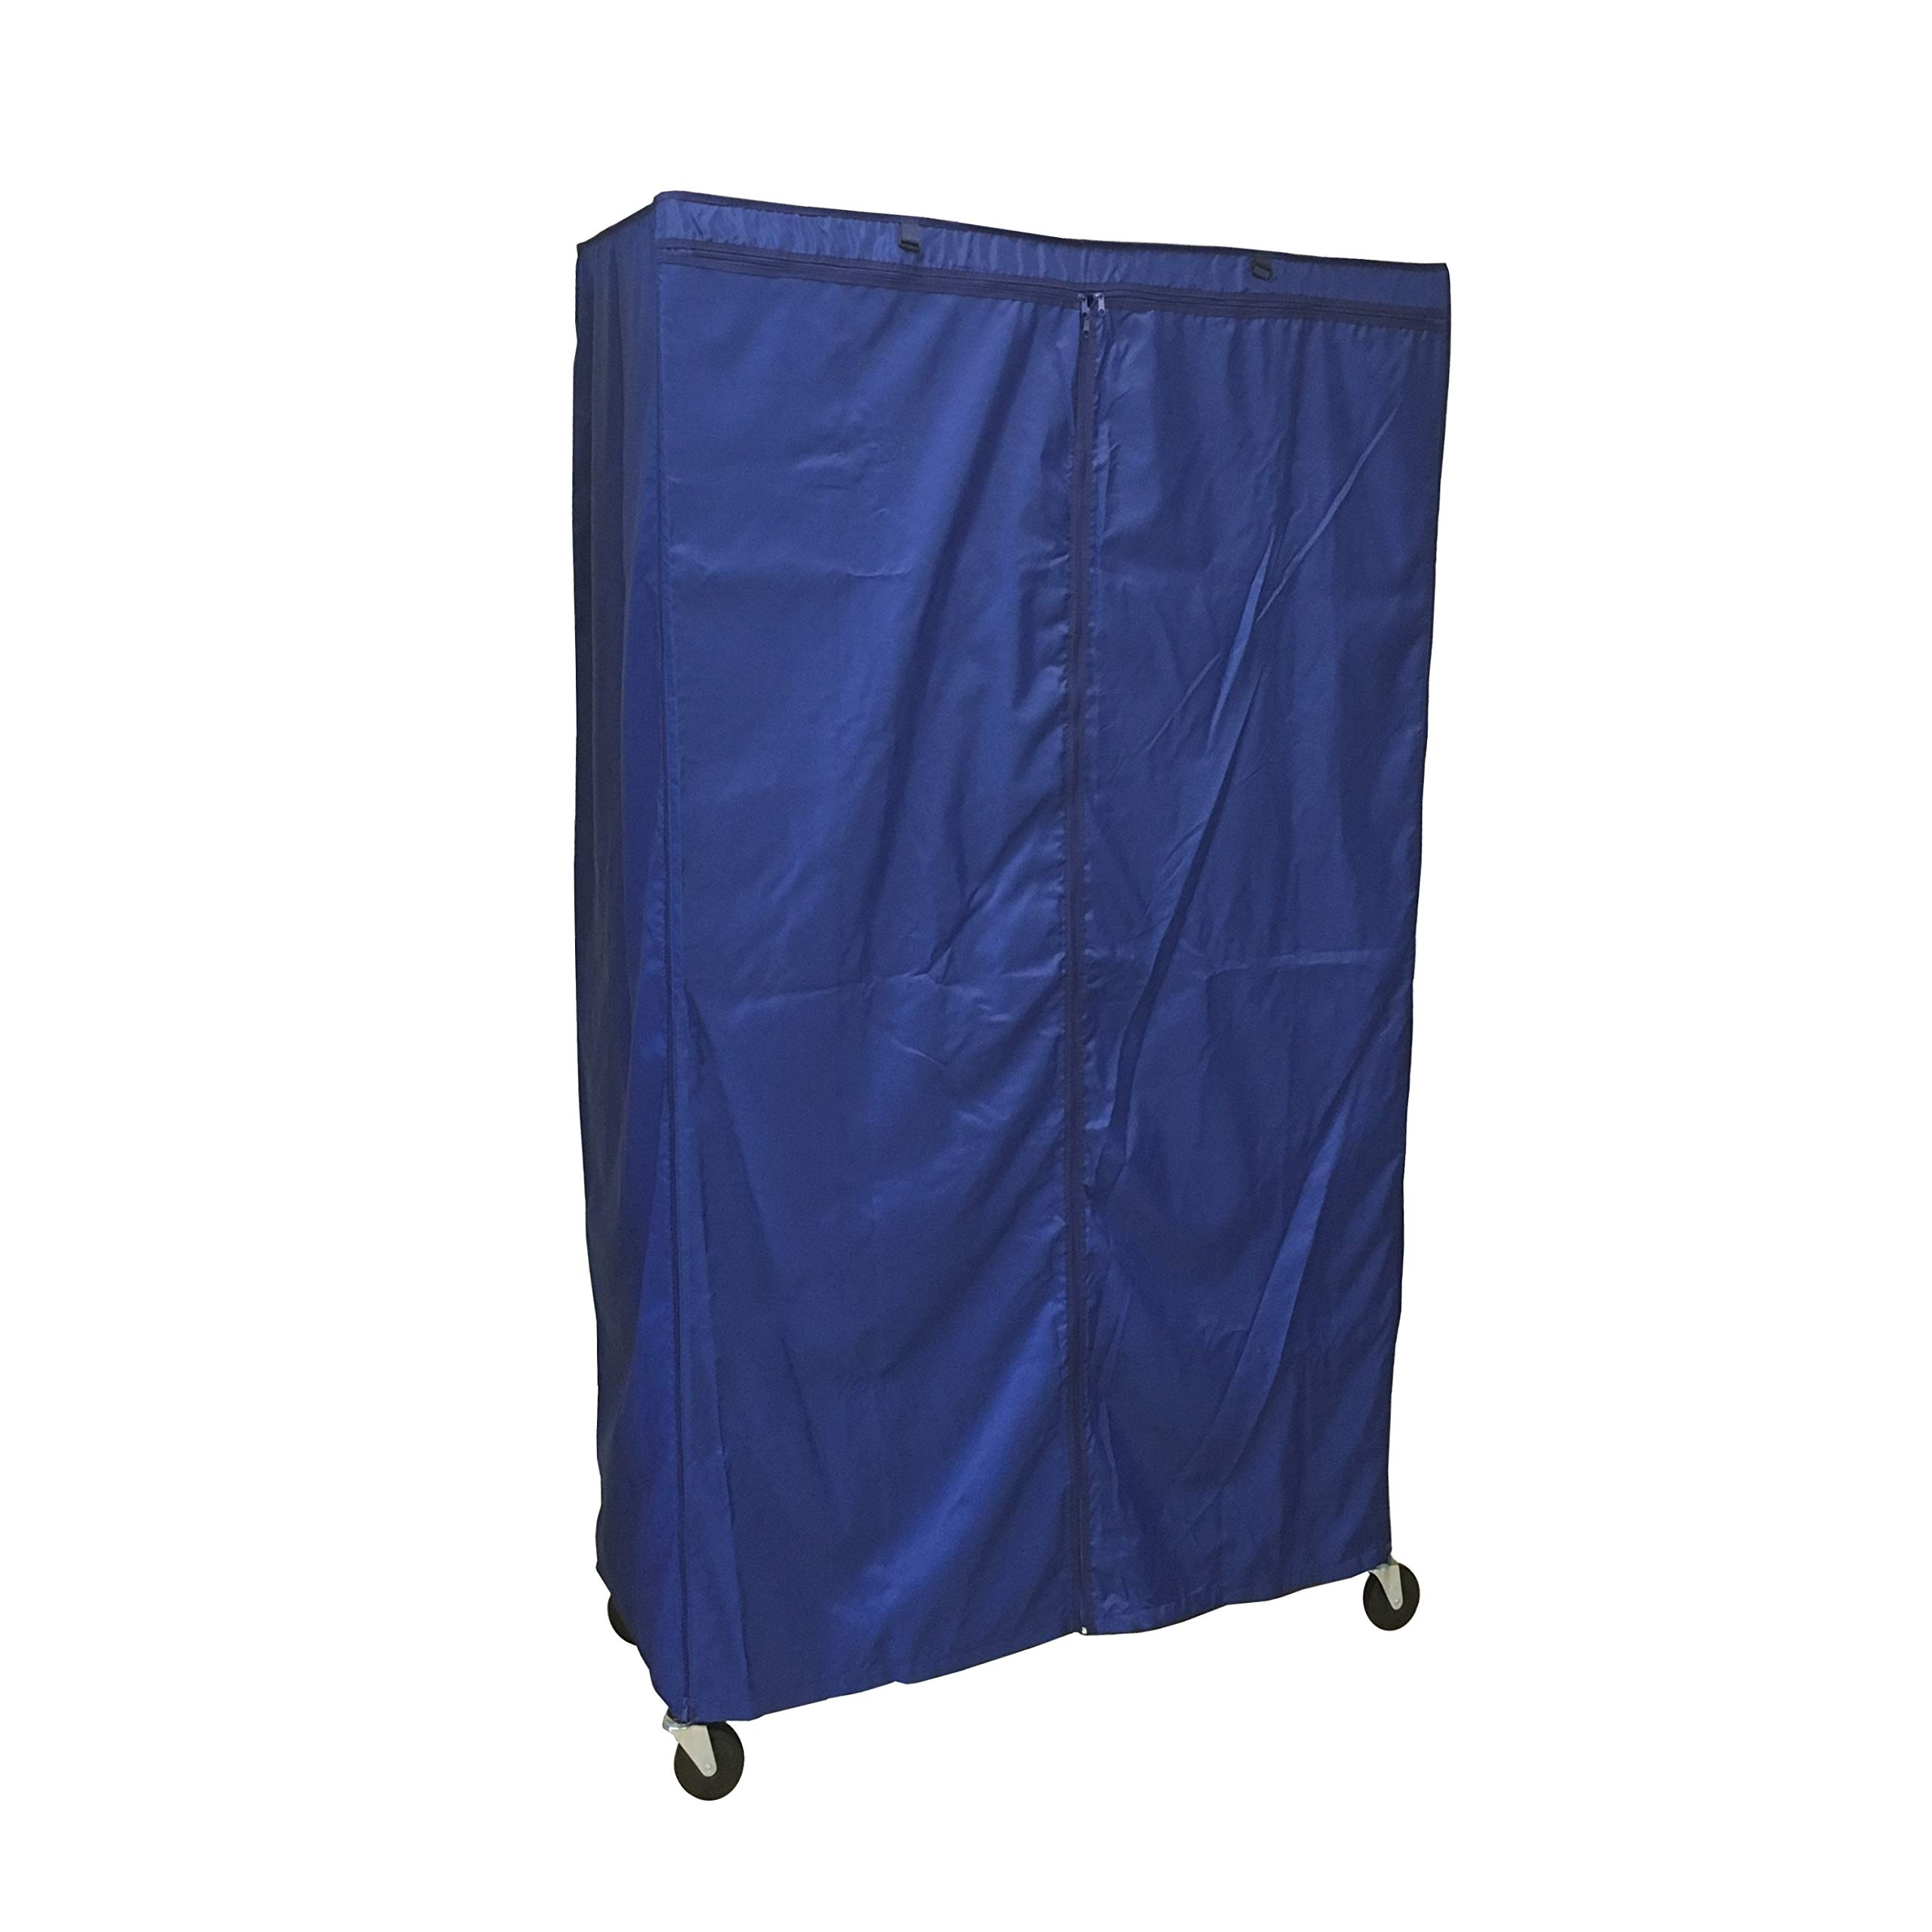 Formosa Covers Storage Shelving Unit Cover, fit Racks 36'' Wx18 Dx72 H (Cover Only, Royal Blue)